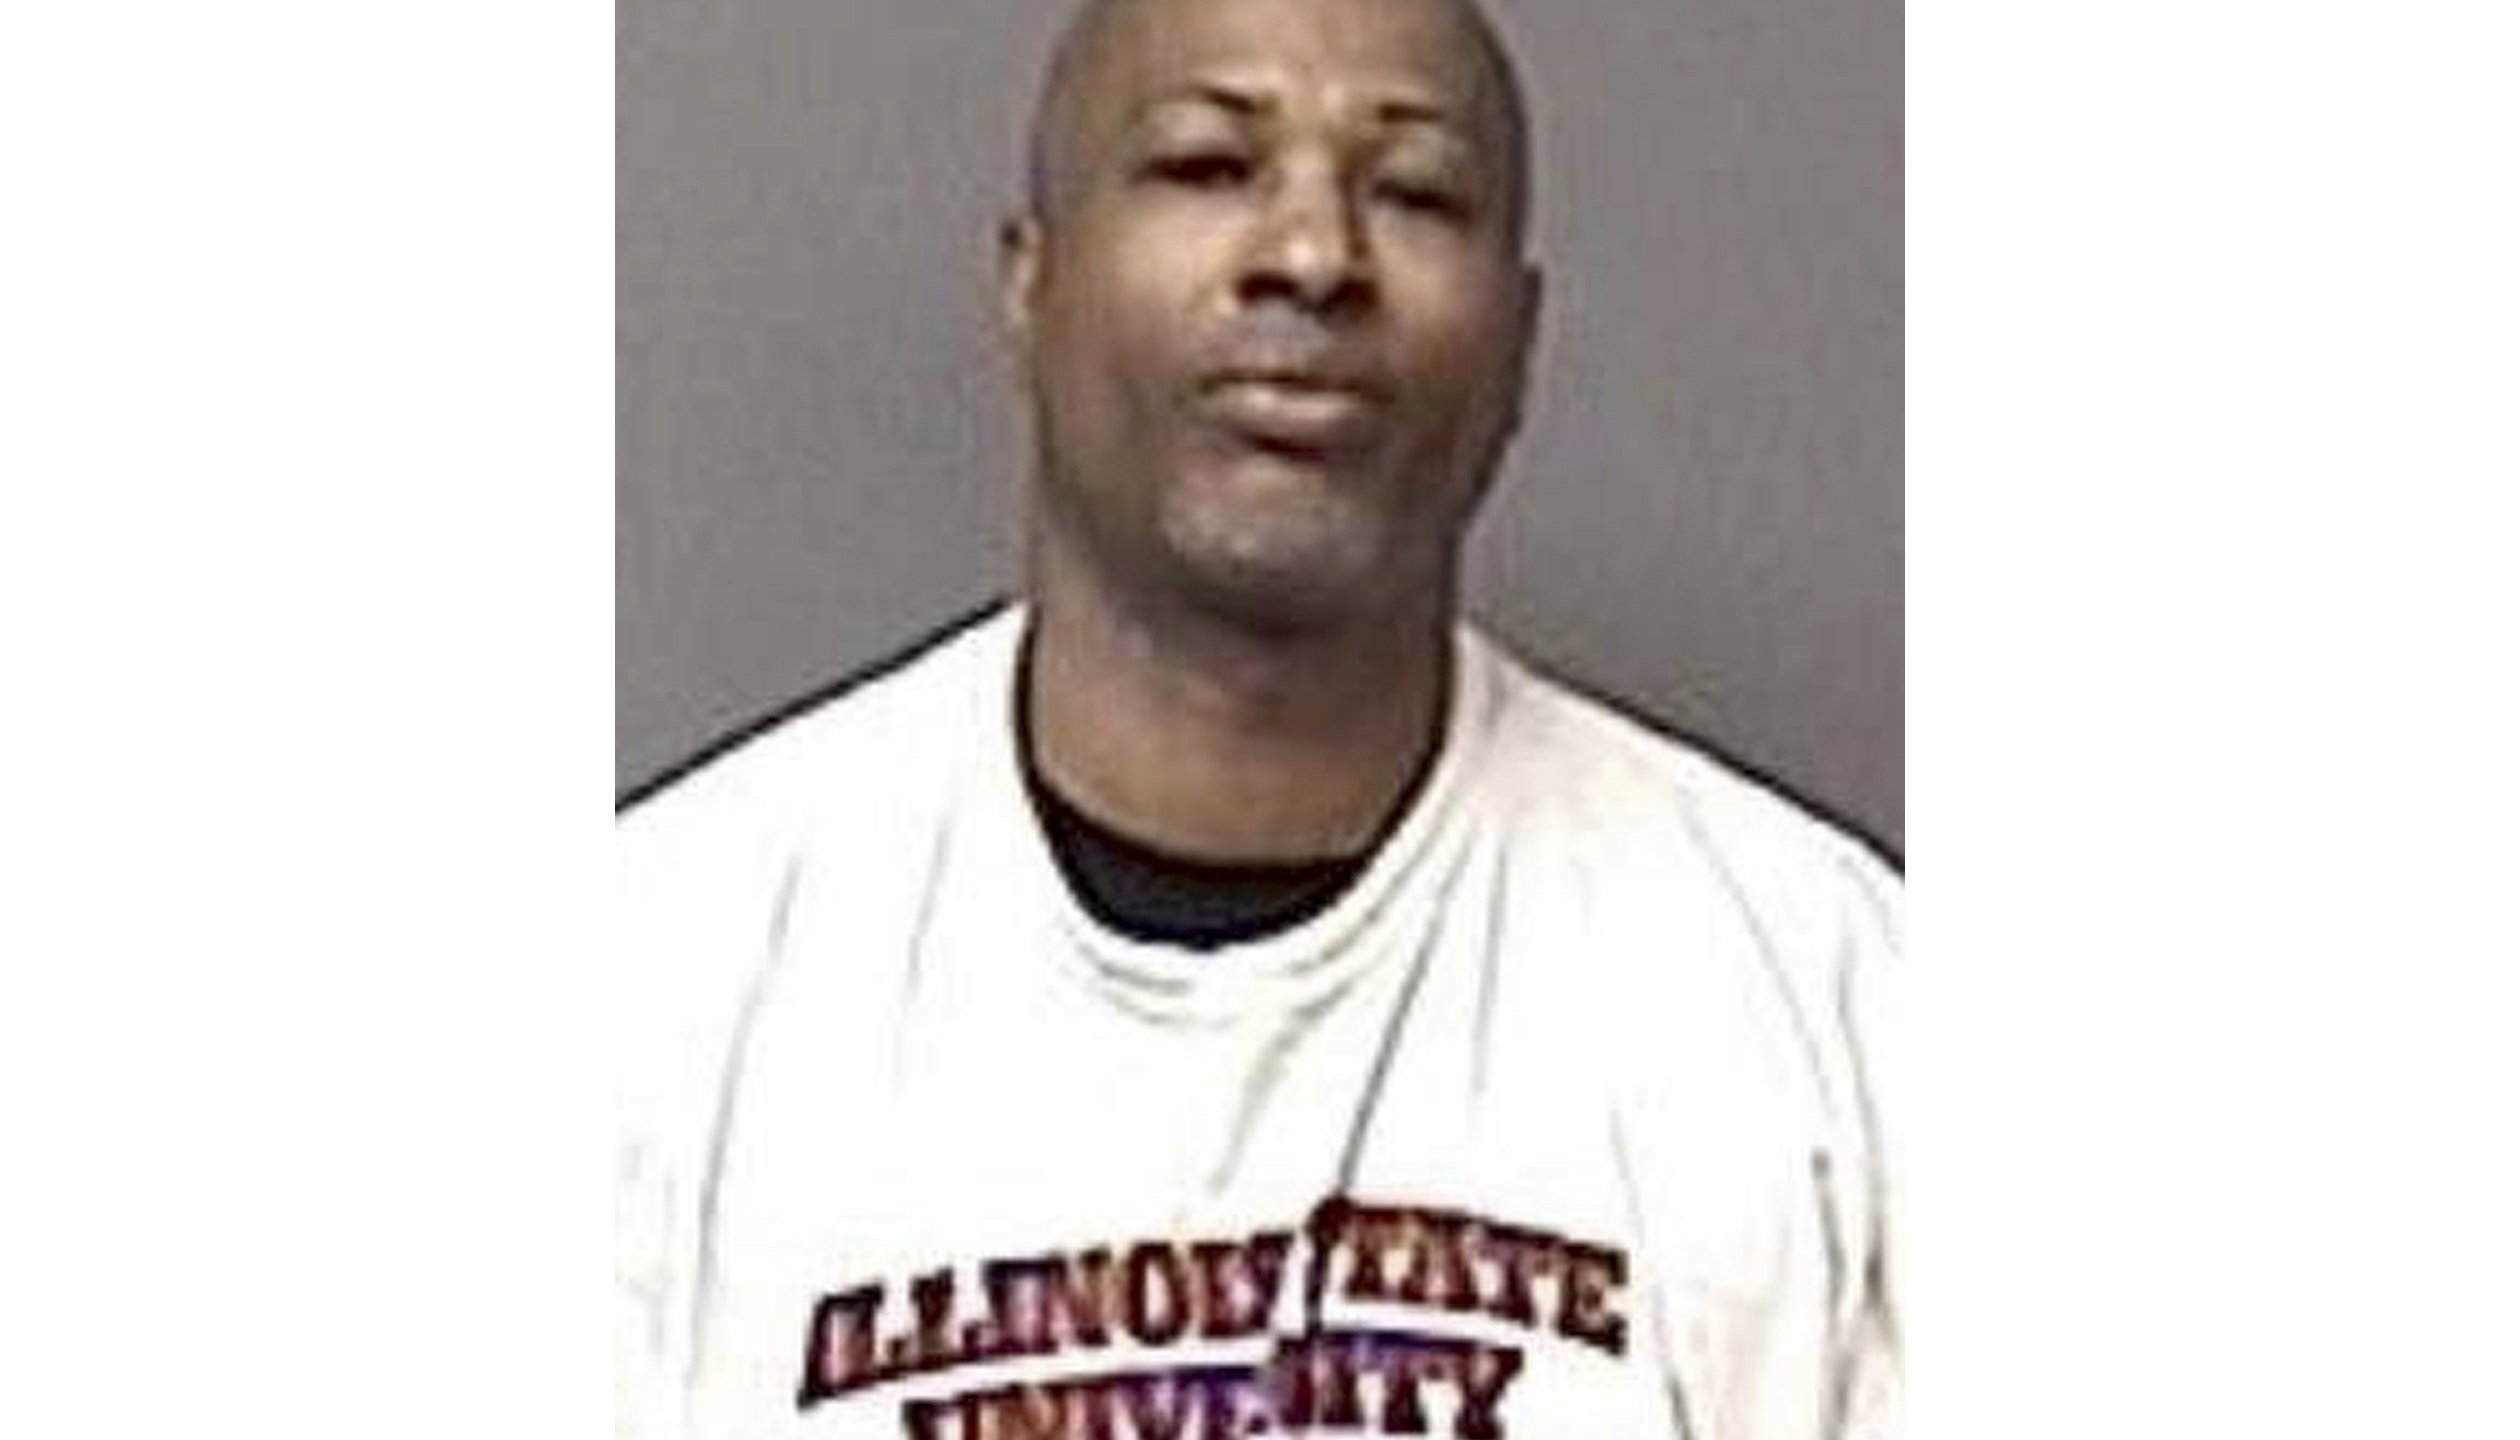 Undated booking photo provided by the Aurora Illinois Police Department shows Gary Montez Martin_1550405694365.jpeg.jpg